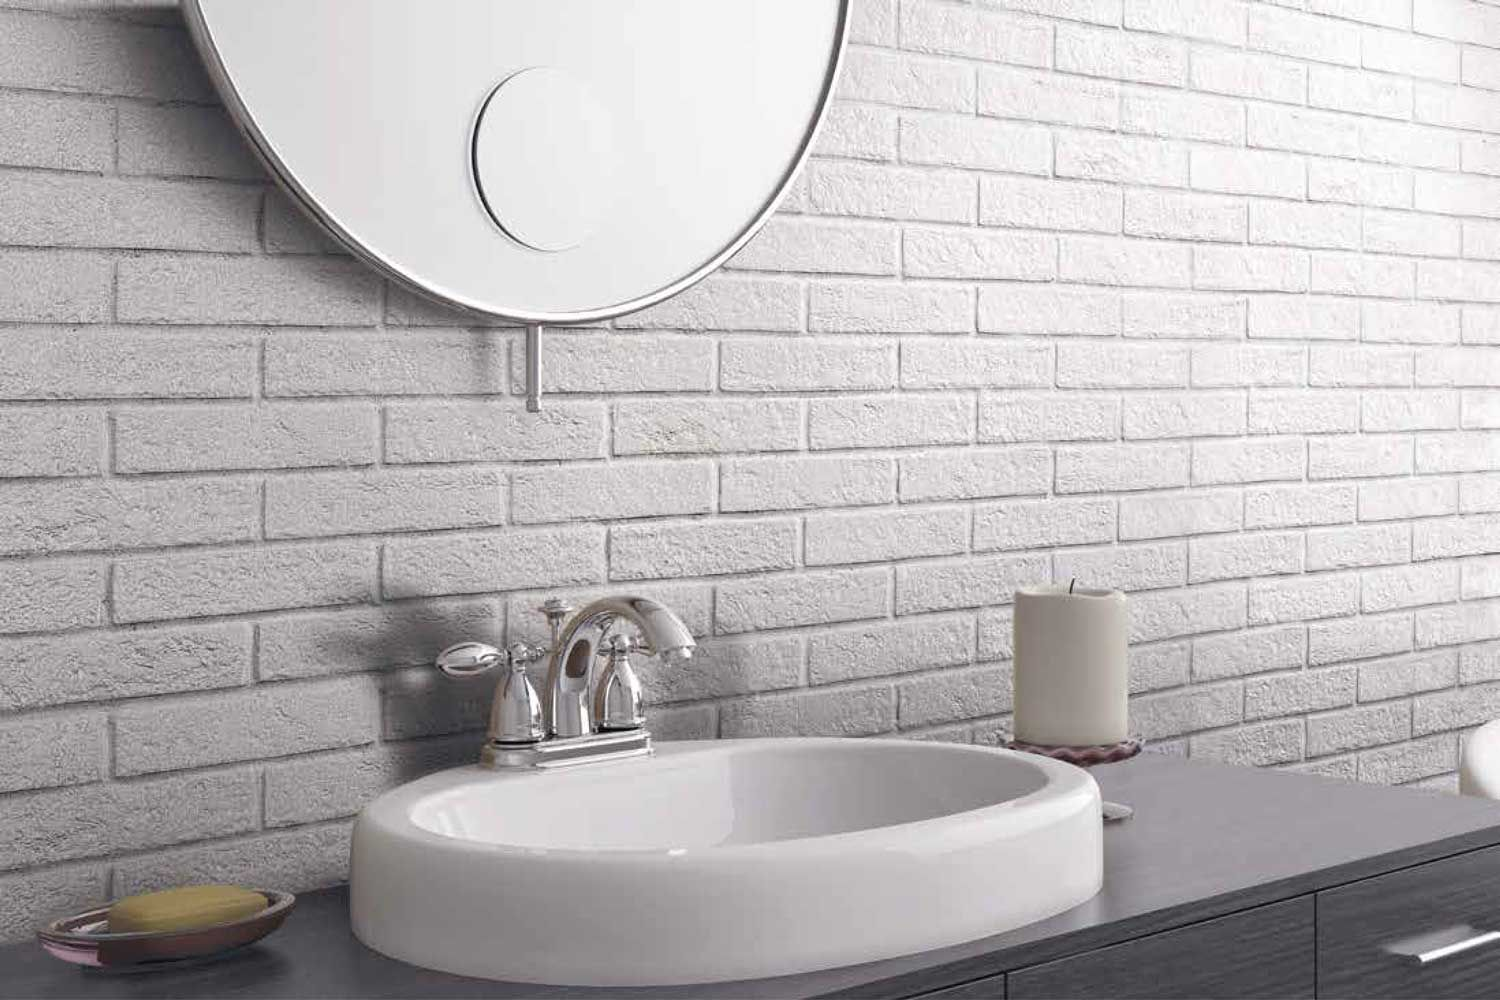 Awesome 12X24 Tile Floor Thin 13X13 Ceramic Tile Flat 16X16 Ceiling Tiles 18 X 18 Ceramic Floor Tile Old 2 X4 Ceiling Tiles Red24 X 48 Ceiling Tiles Brick   Italian Floor \u0026 Wall Tile. Click On The Image To Visit Our ..